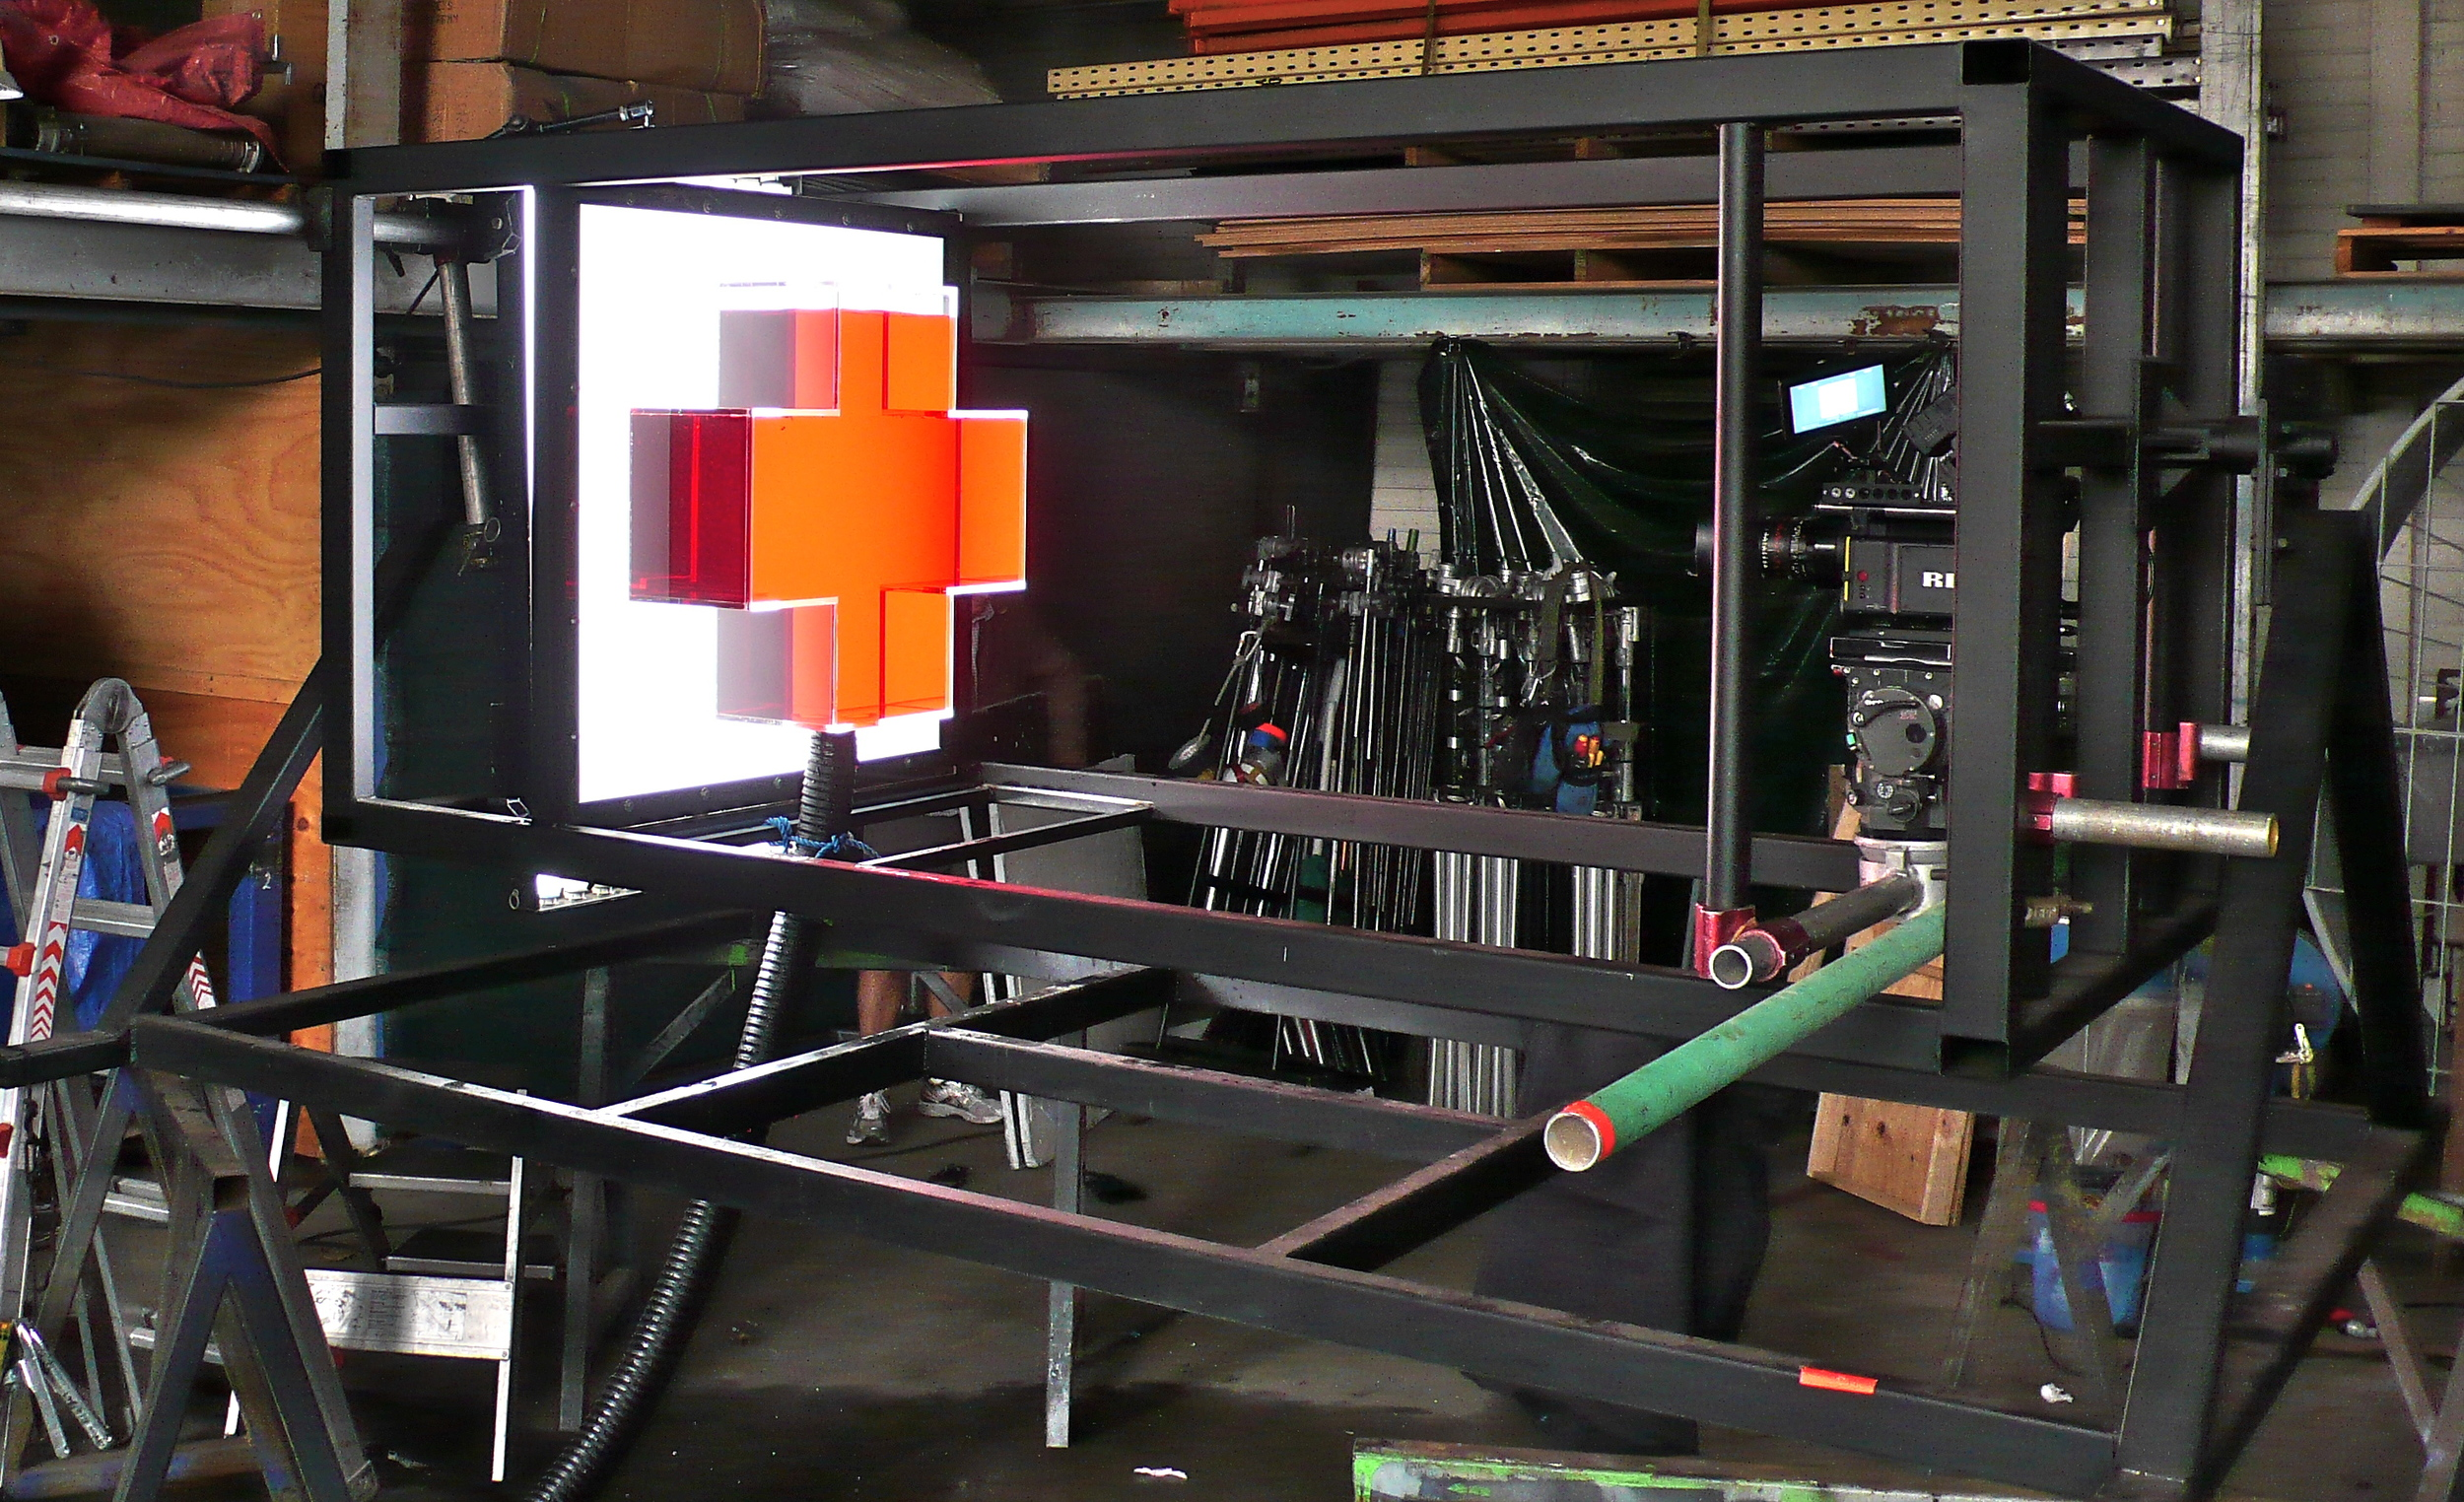 large rig to rock perspex cross tank and camera from side to side at the same time